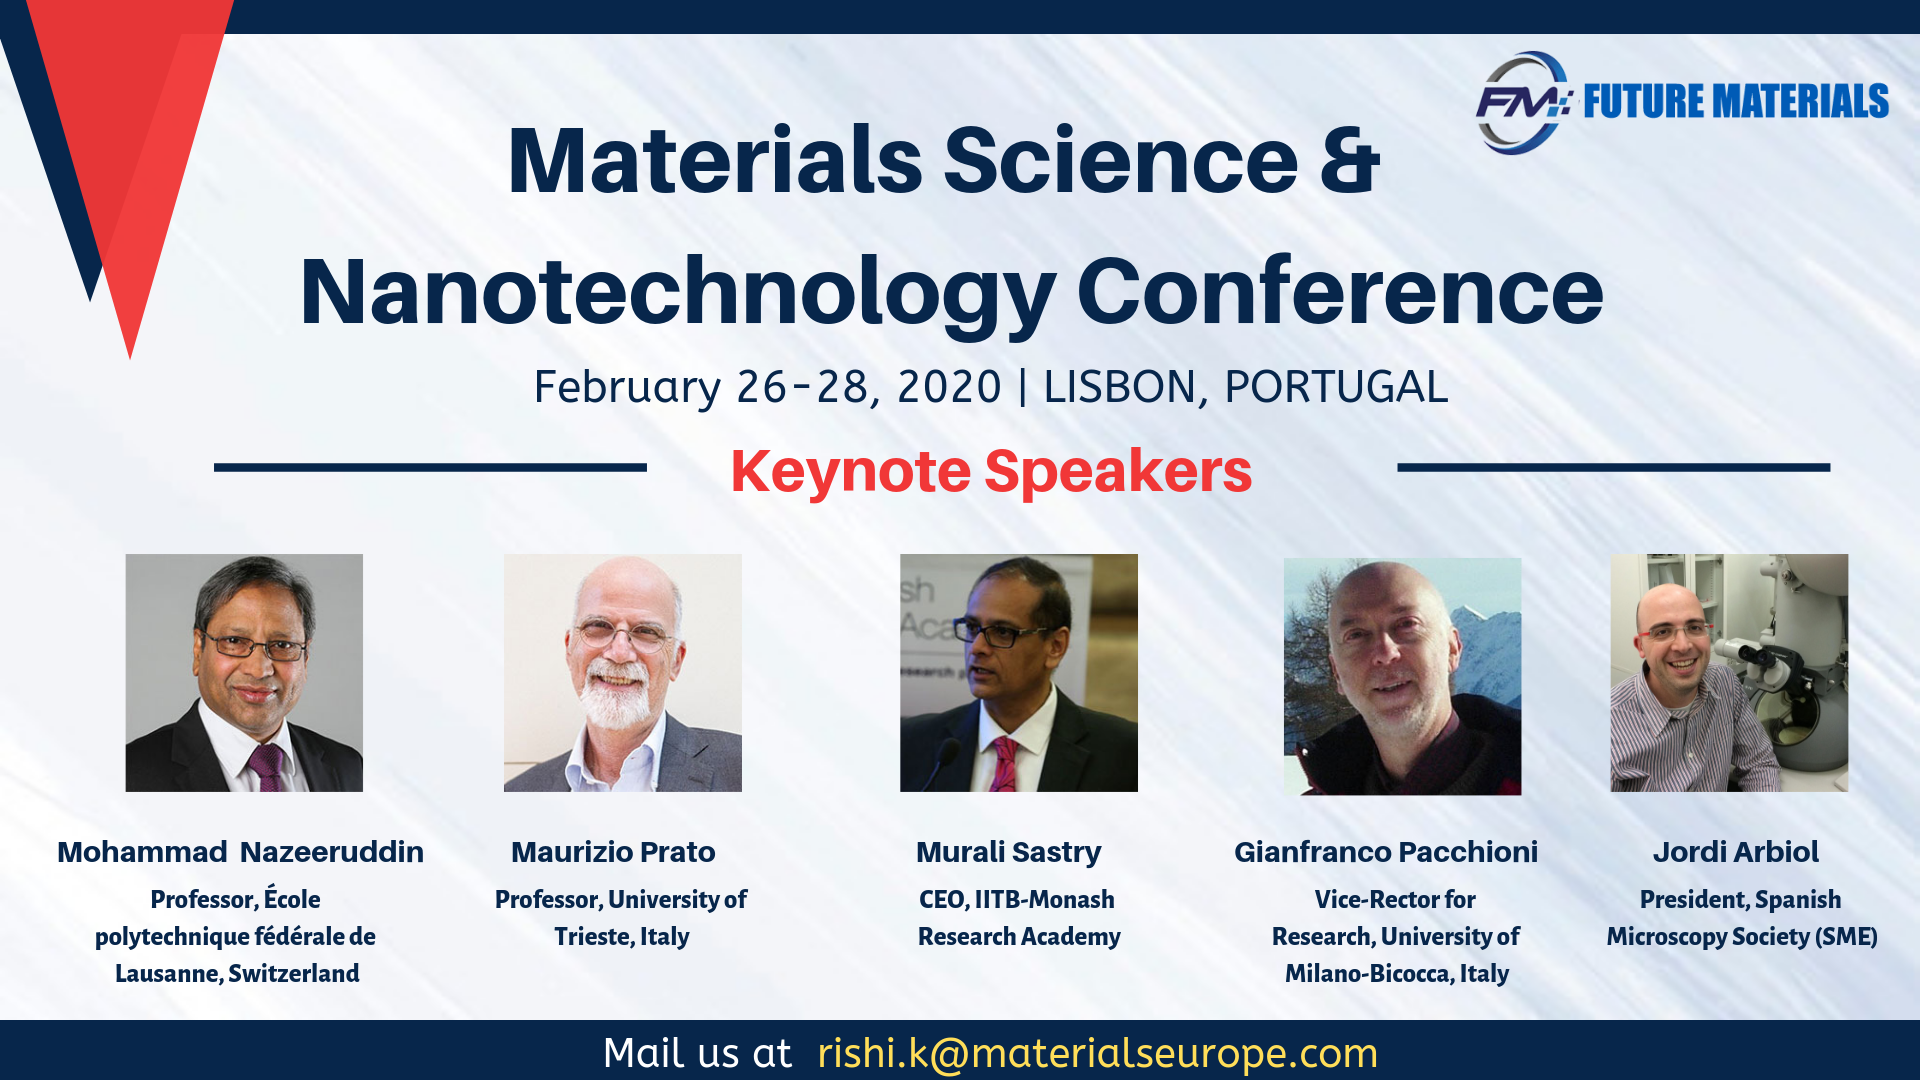 Materials Science & Nanotechnology Conference